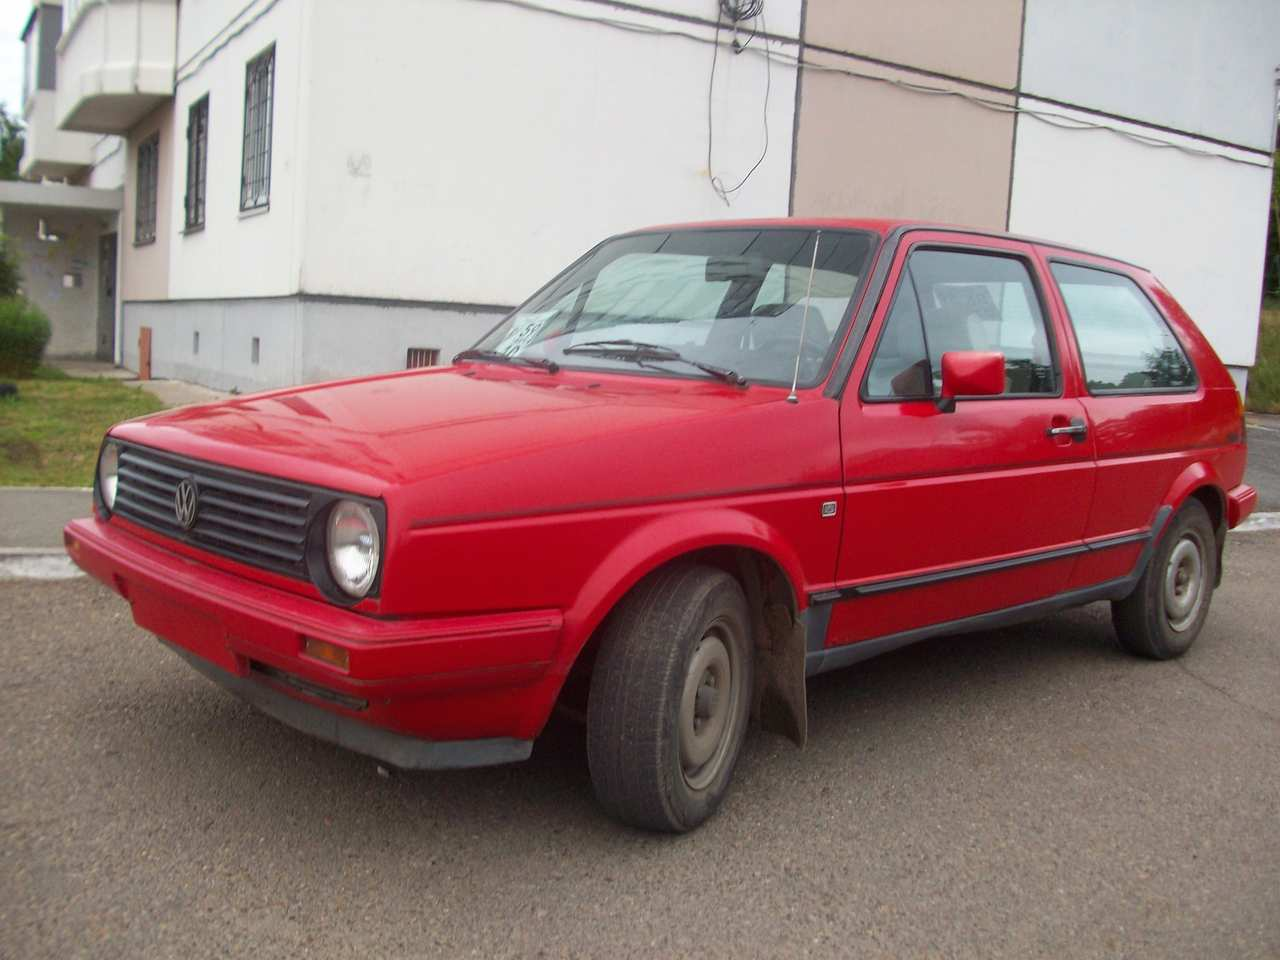 used 1985 volkswagen golf photos 1300cc gasoline ff manual for sale rh cars directory net 1993 Volkswagen Golf 1980 Volkswagen Golf